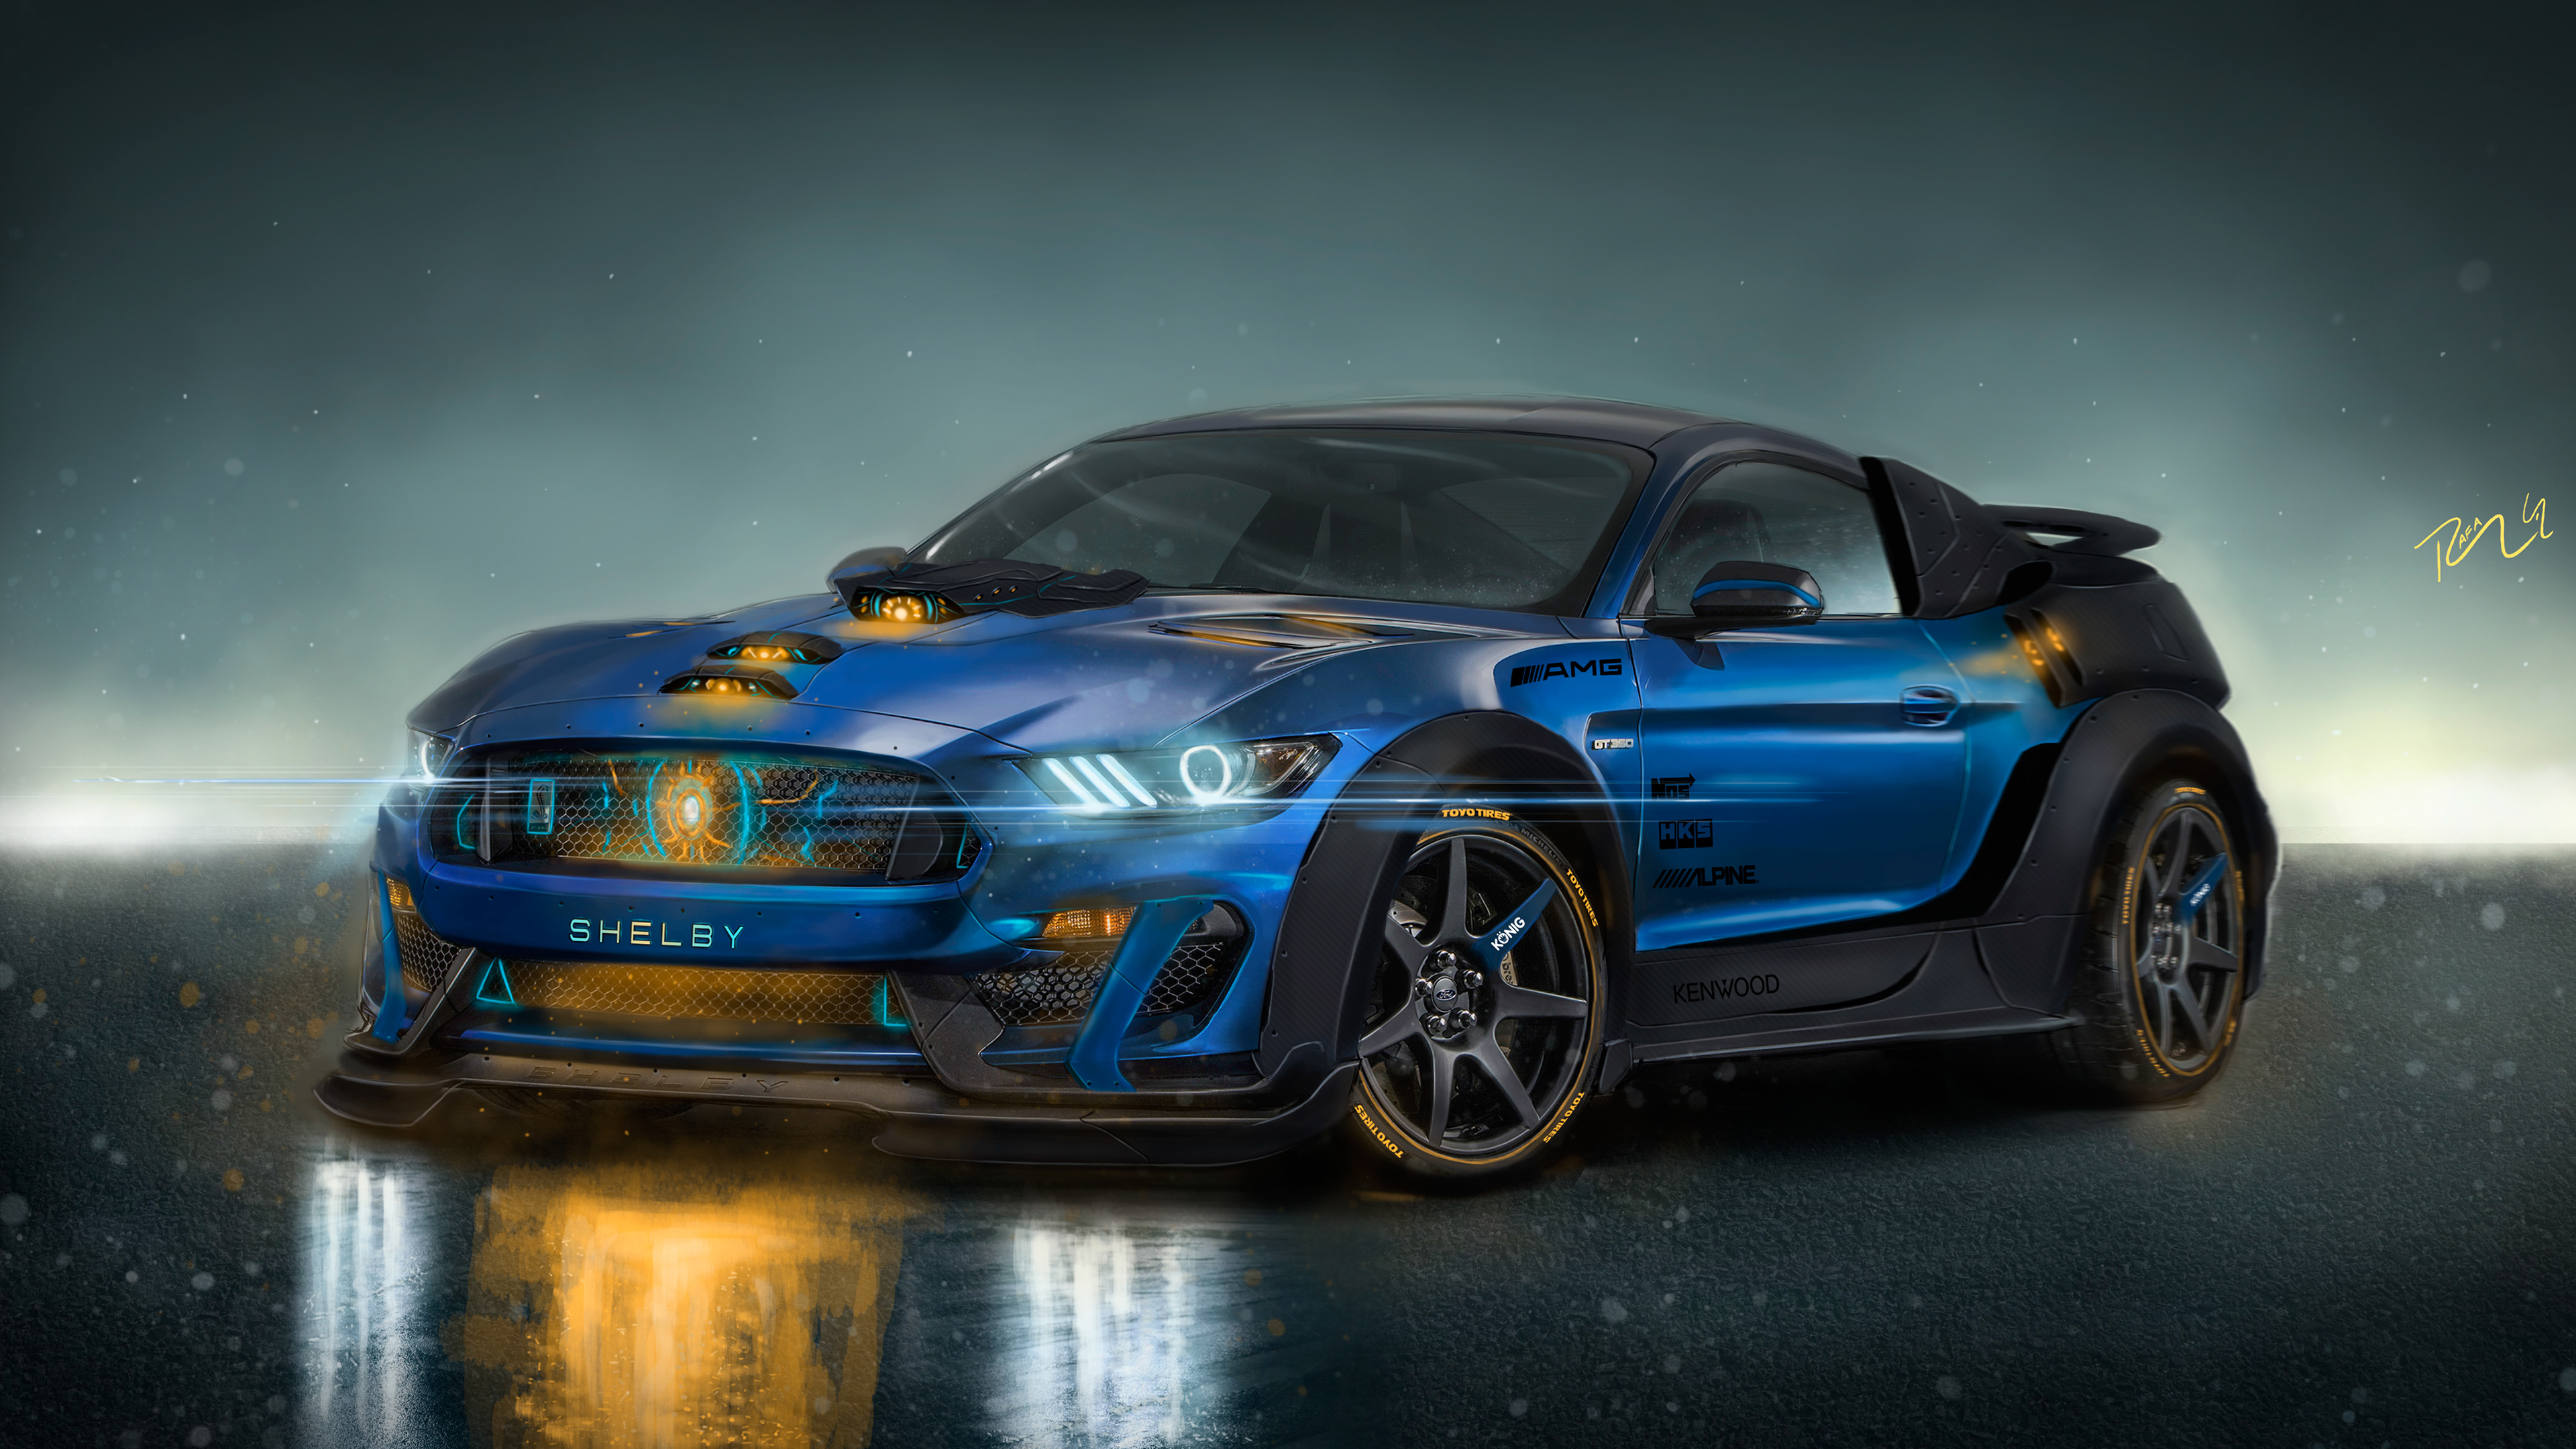 shelby gt500r custom cgi 4k wallpaper | hd car wallpapers | id #9021